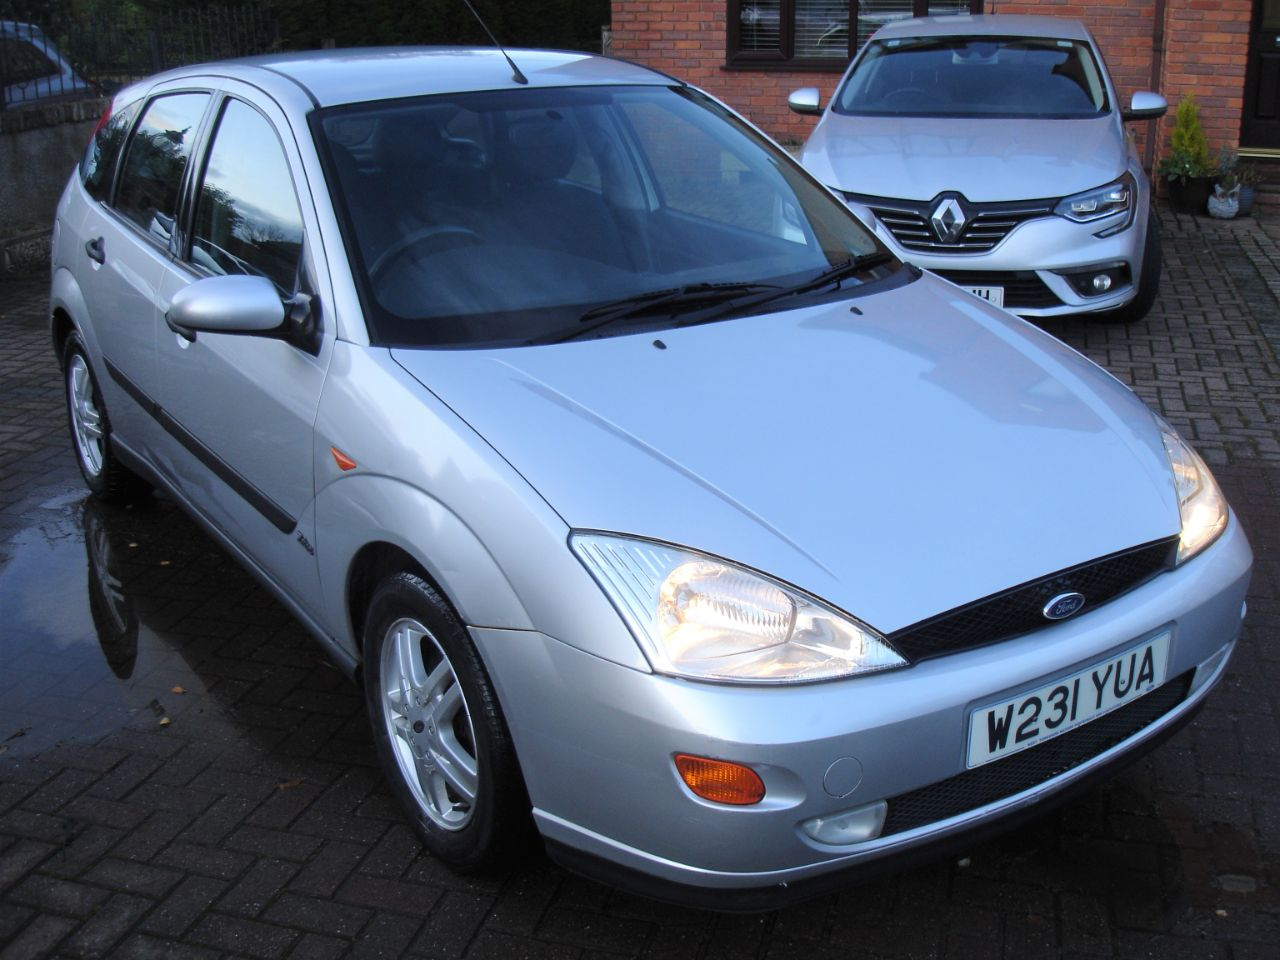 Ford Focus 1.8 Zetec Climate 5dr Hatchback Petrol Silver at Level Pitch Selby